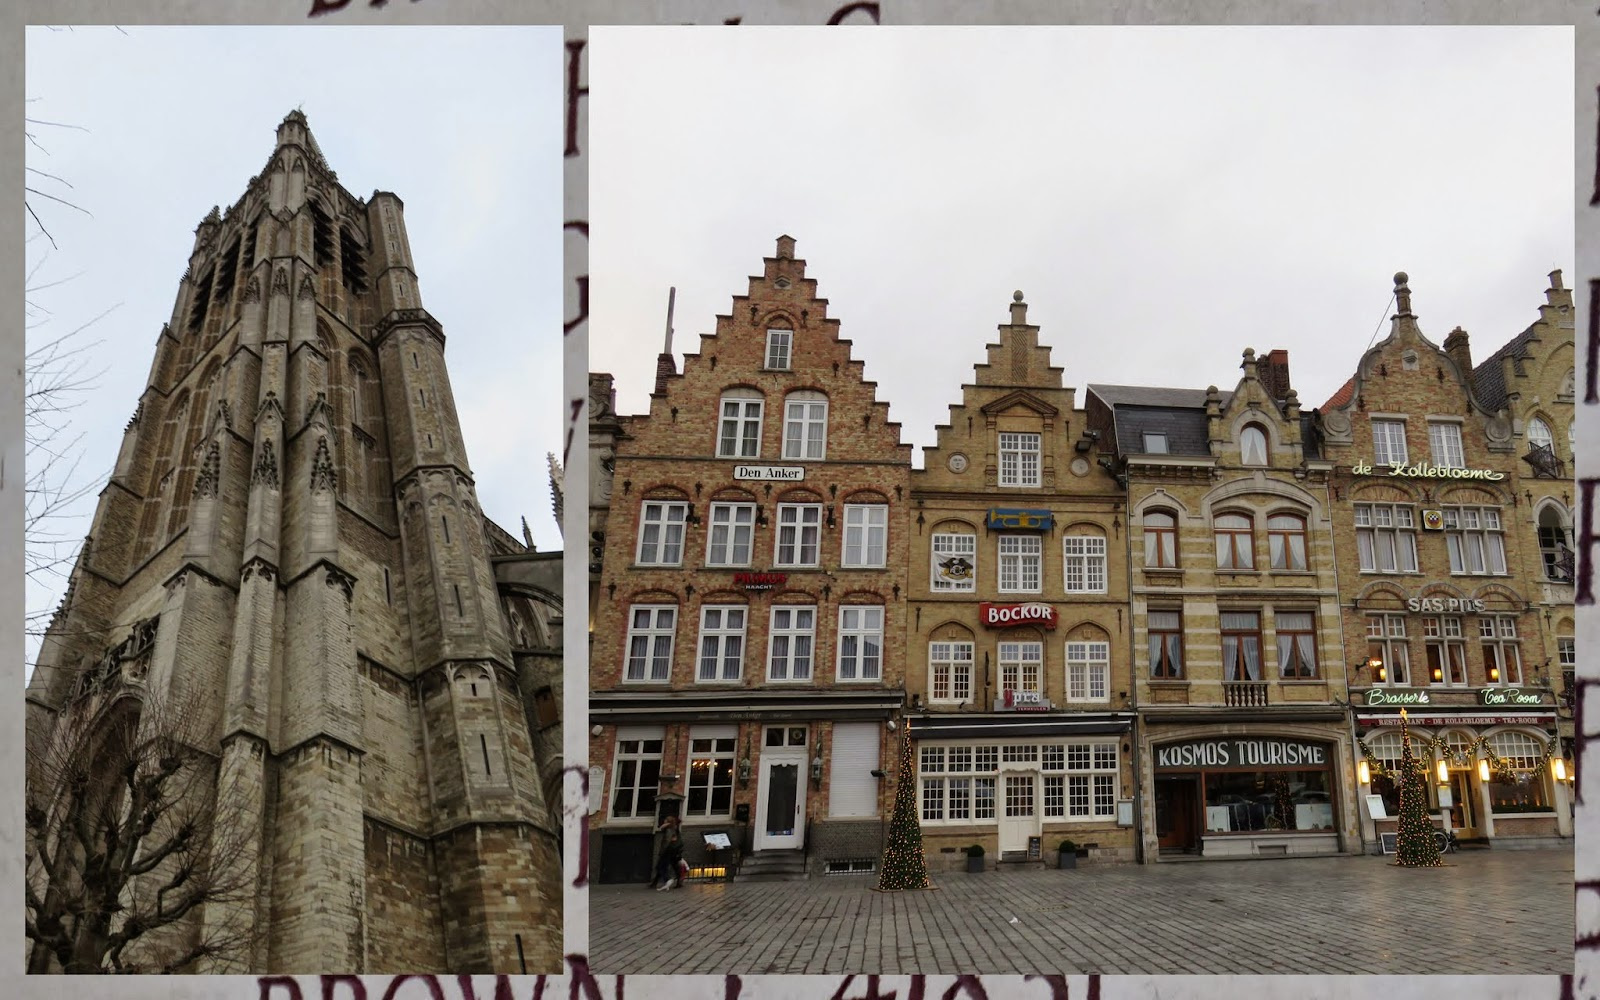 The Grote Markt in Ypres